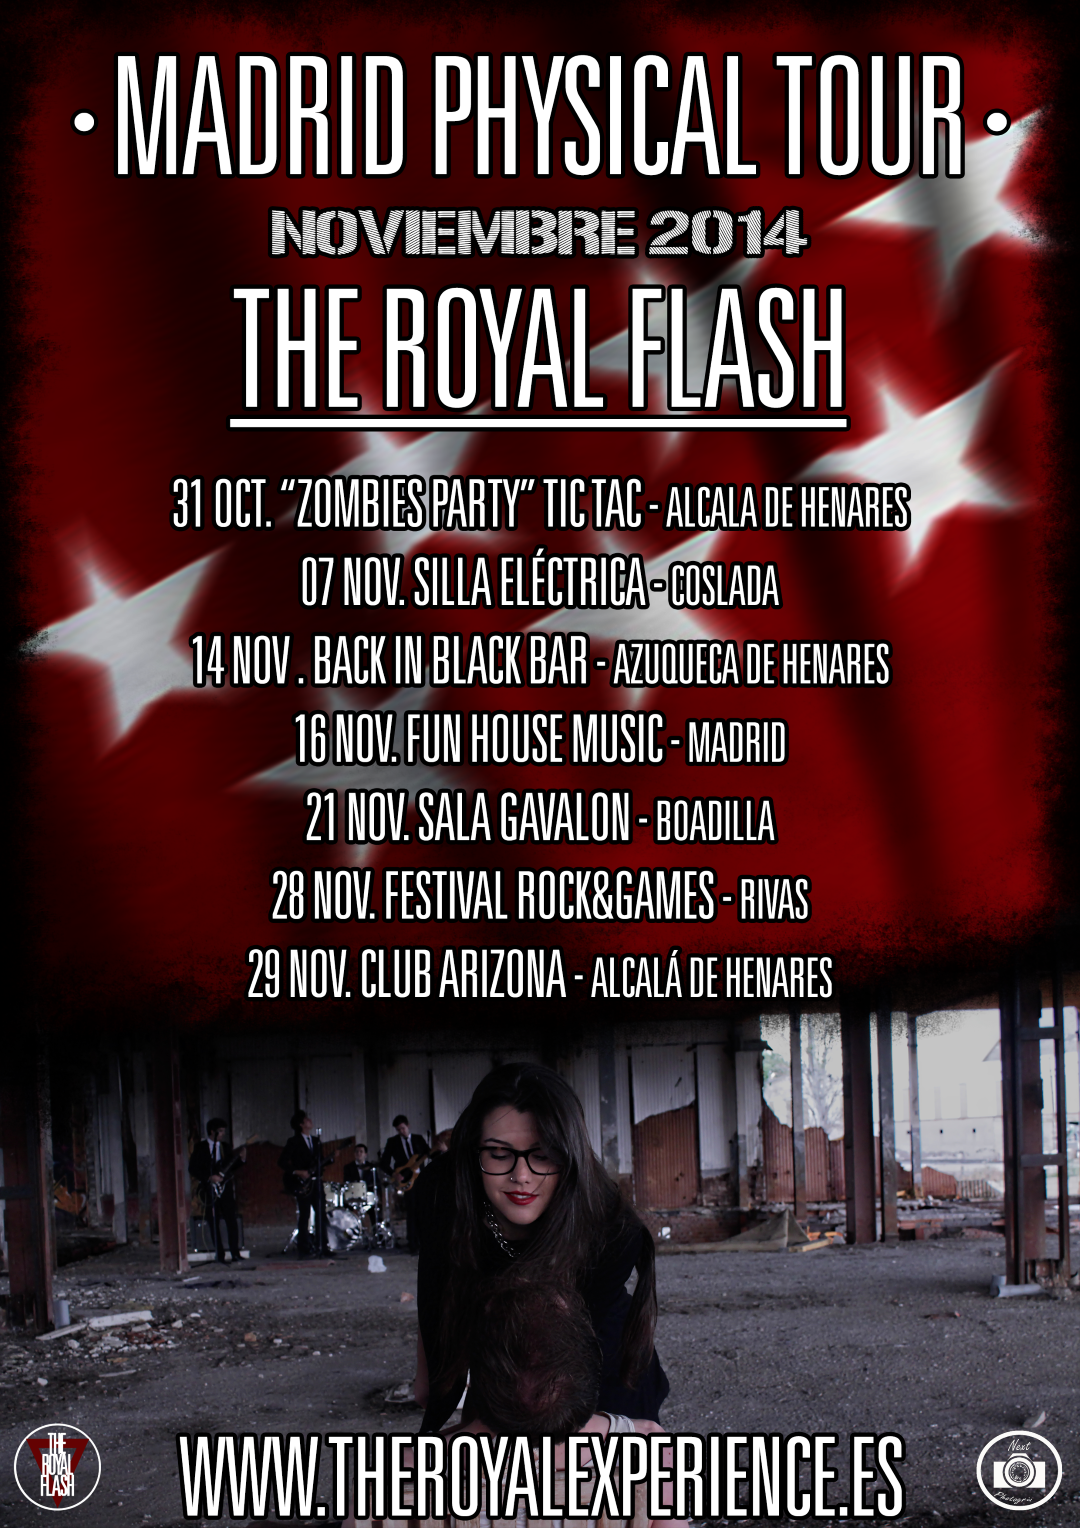 The Royal Flash - Madrid Physical Tour‏